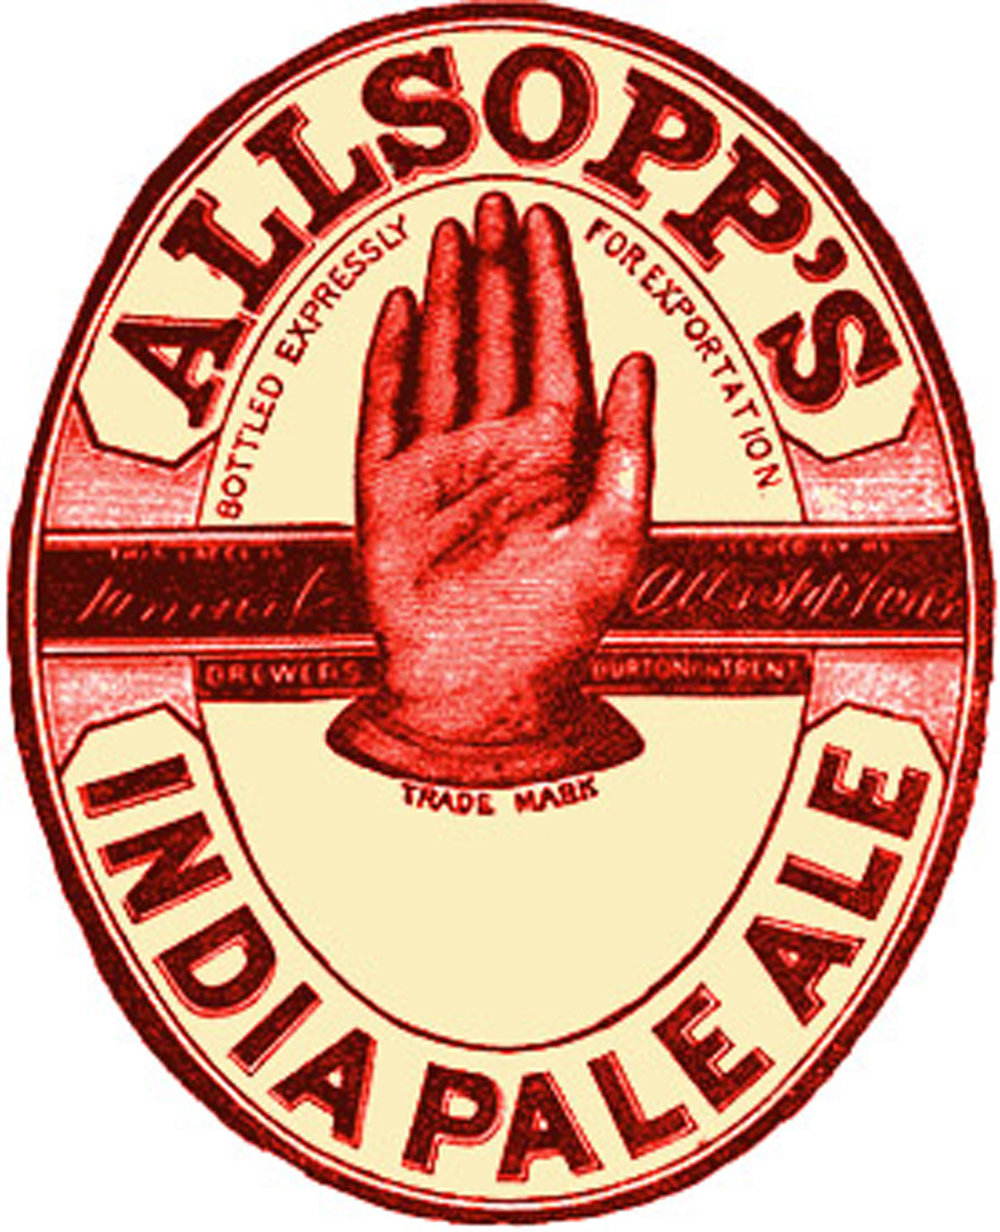 Allsopp's India Pale Ale, one of the first IPAs on the English market